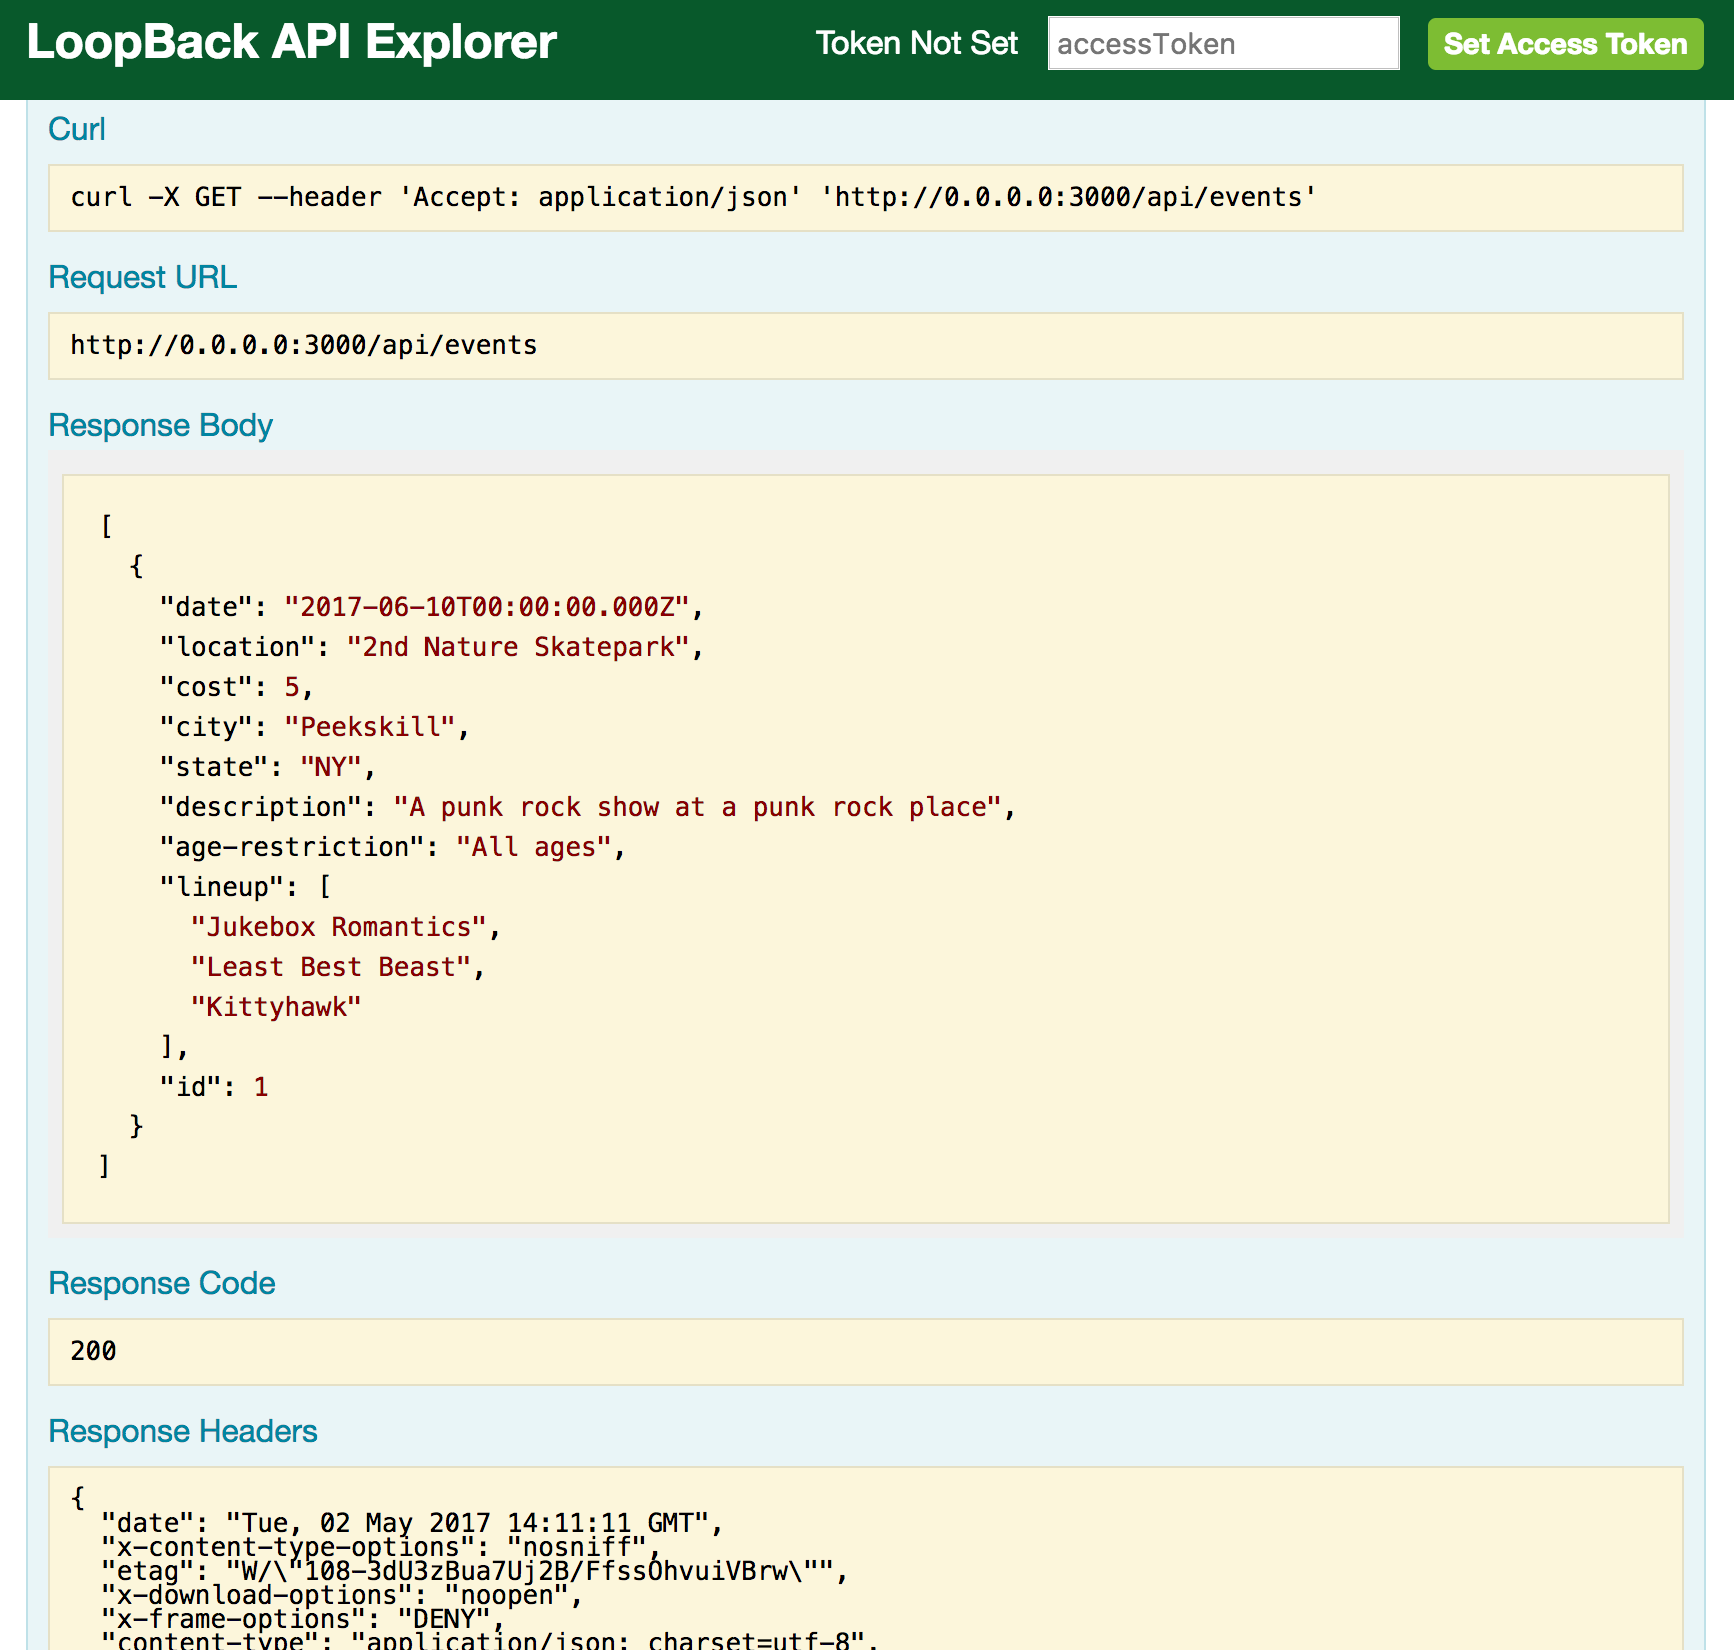 LoopBack API Explorer - GET method with data